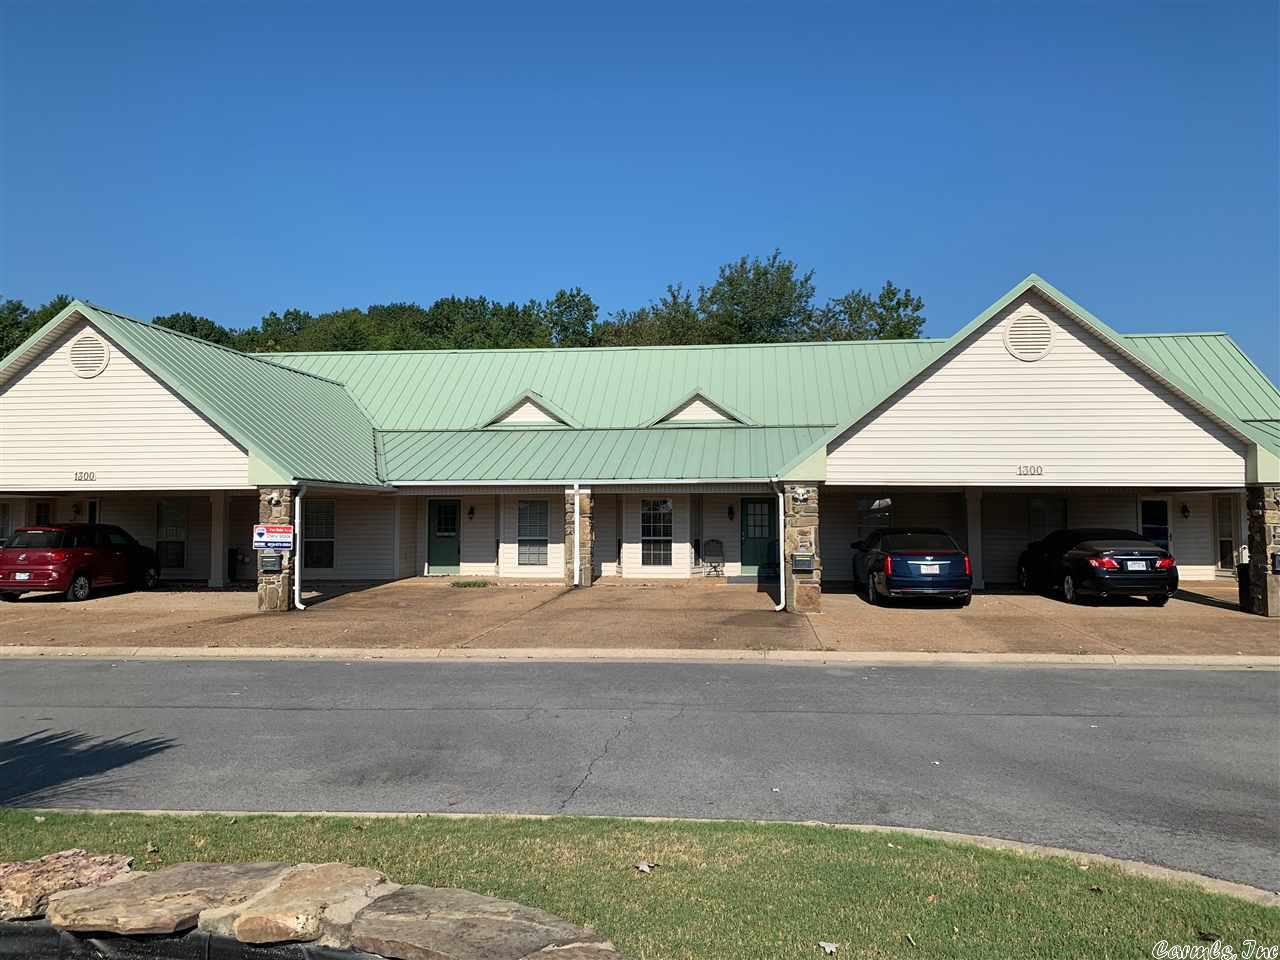 1300 A-D Sage Brush Way Way #No, Heber Springs, AR 72543